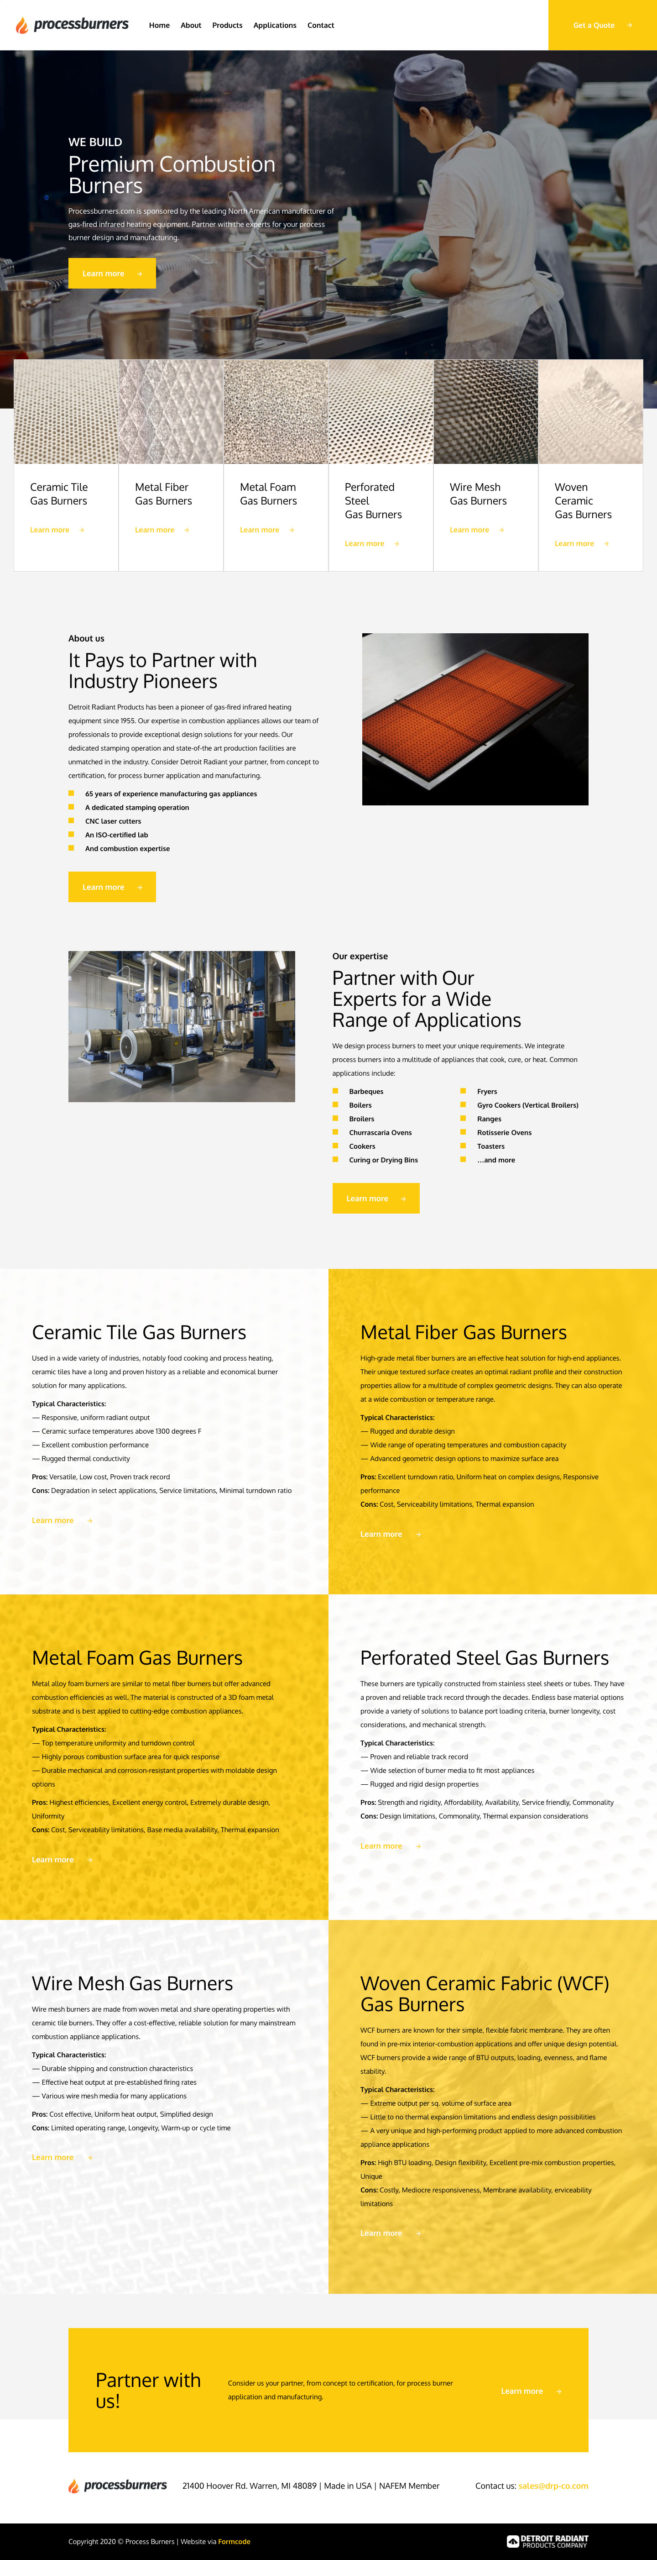 Process Burners Products Web Design